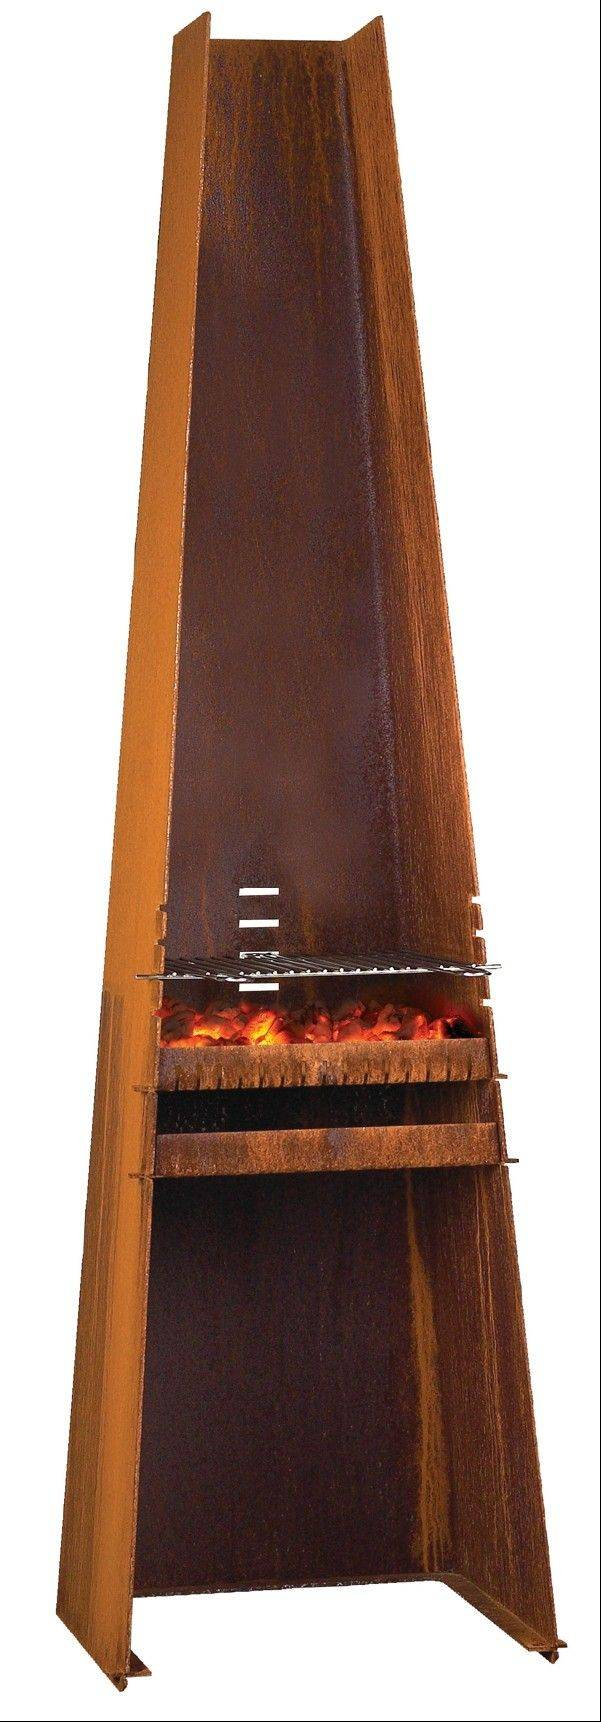 The Rais Giseh grill, standing 6-feet tall, can double as a yard sculpture. This rust-colored steel grill looks like a skyscraper standing on an 18-inch square base.